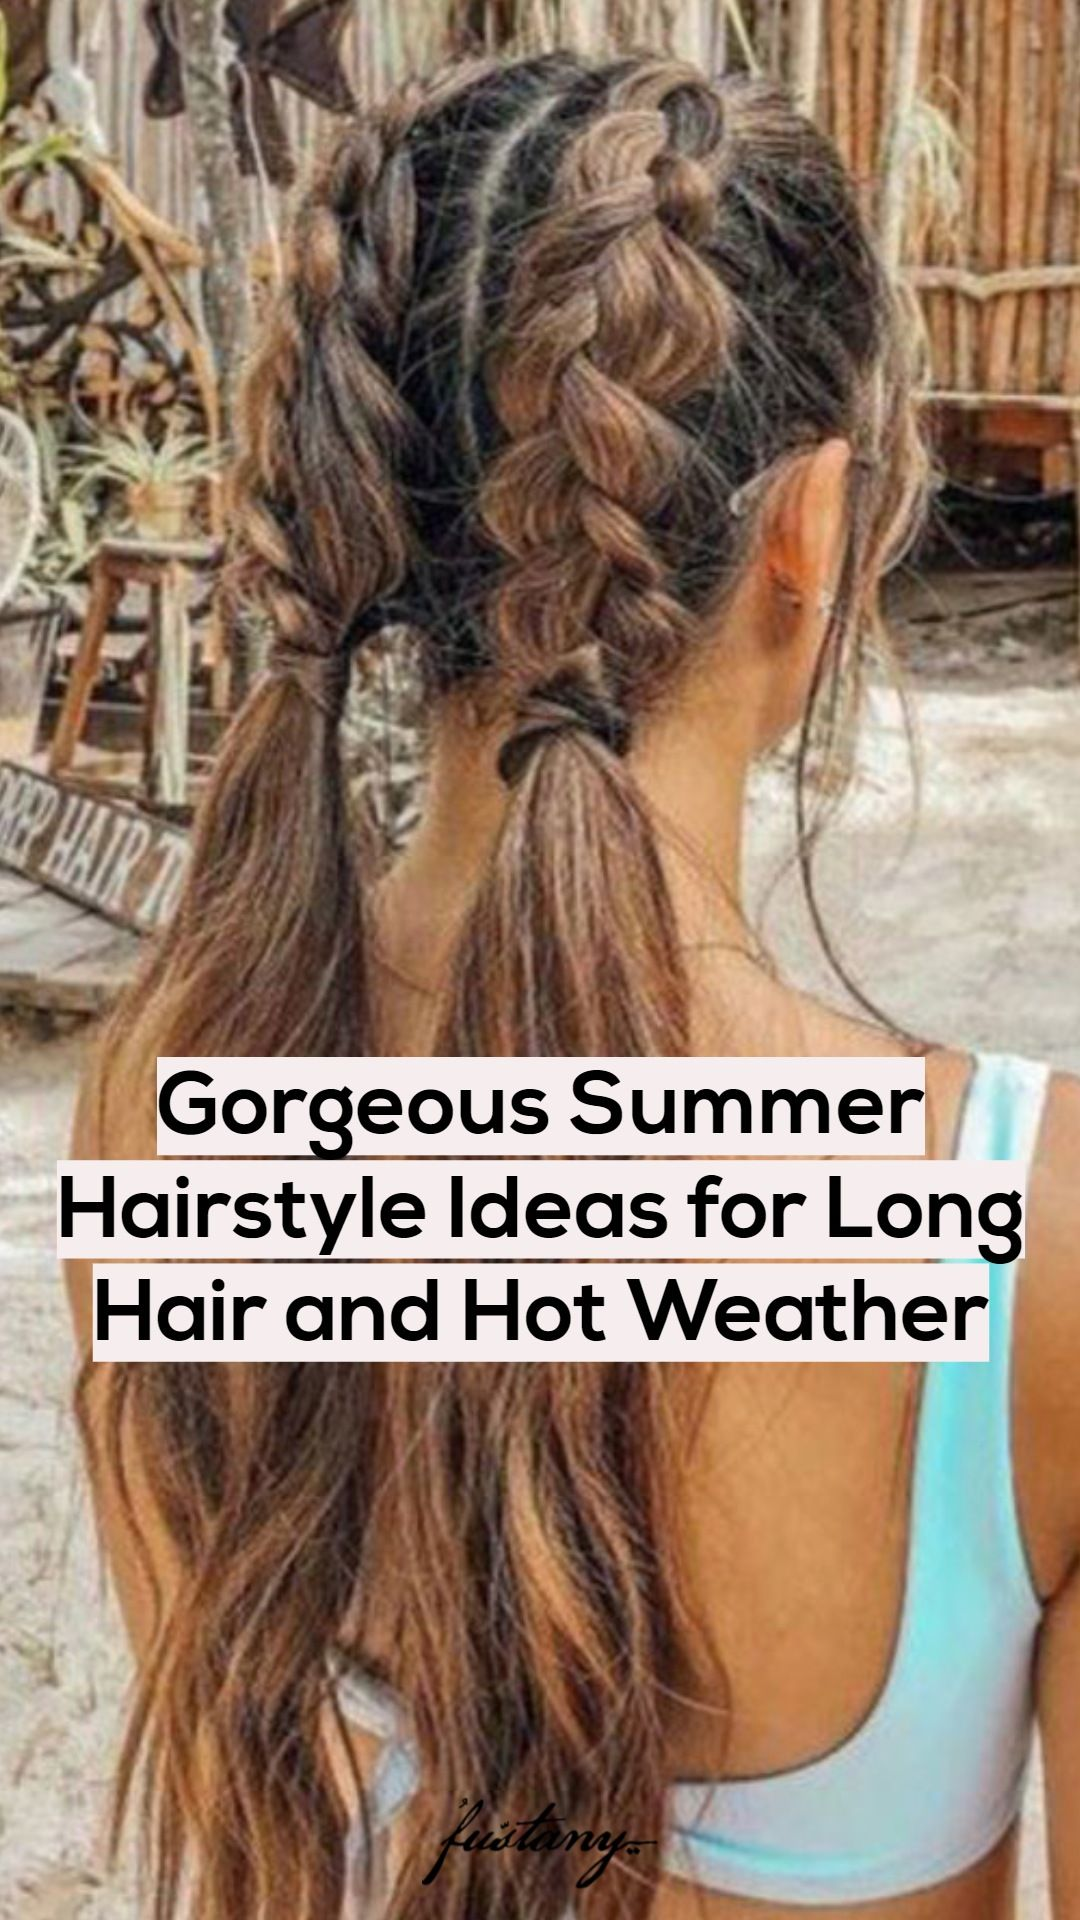 Gorgeous Summer Hairstyle Ideas For Long Hair And Hot Weather In 2020 Hair Styles Long Hair Styles Summer Hairstyles